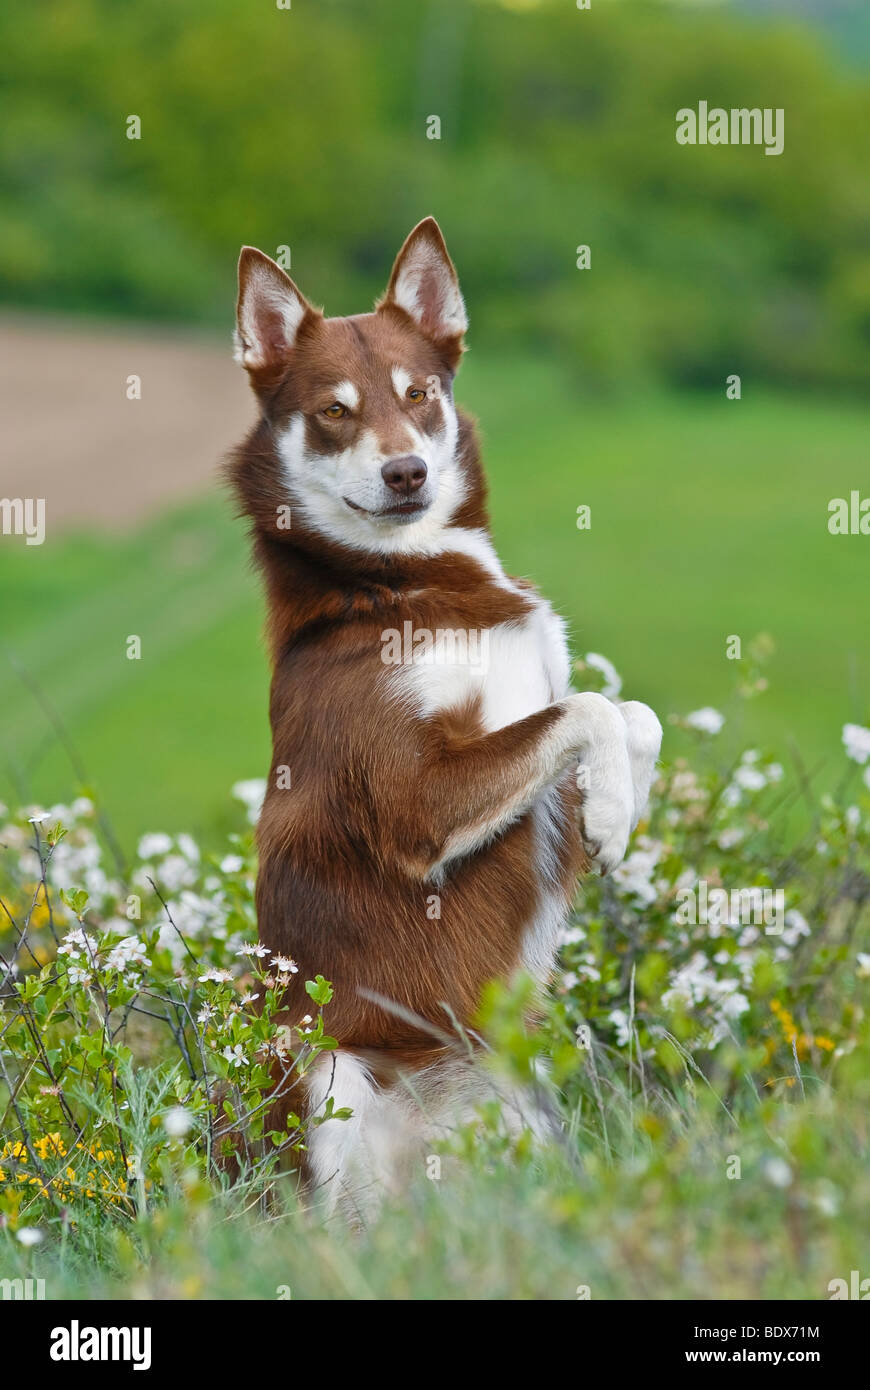 Lapponian Herder, Lapinporokoira or Lapp Reindeer dog begging on a flowery meadow - Stock Image